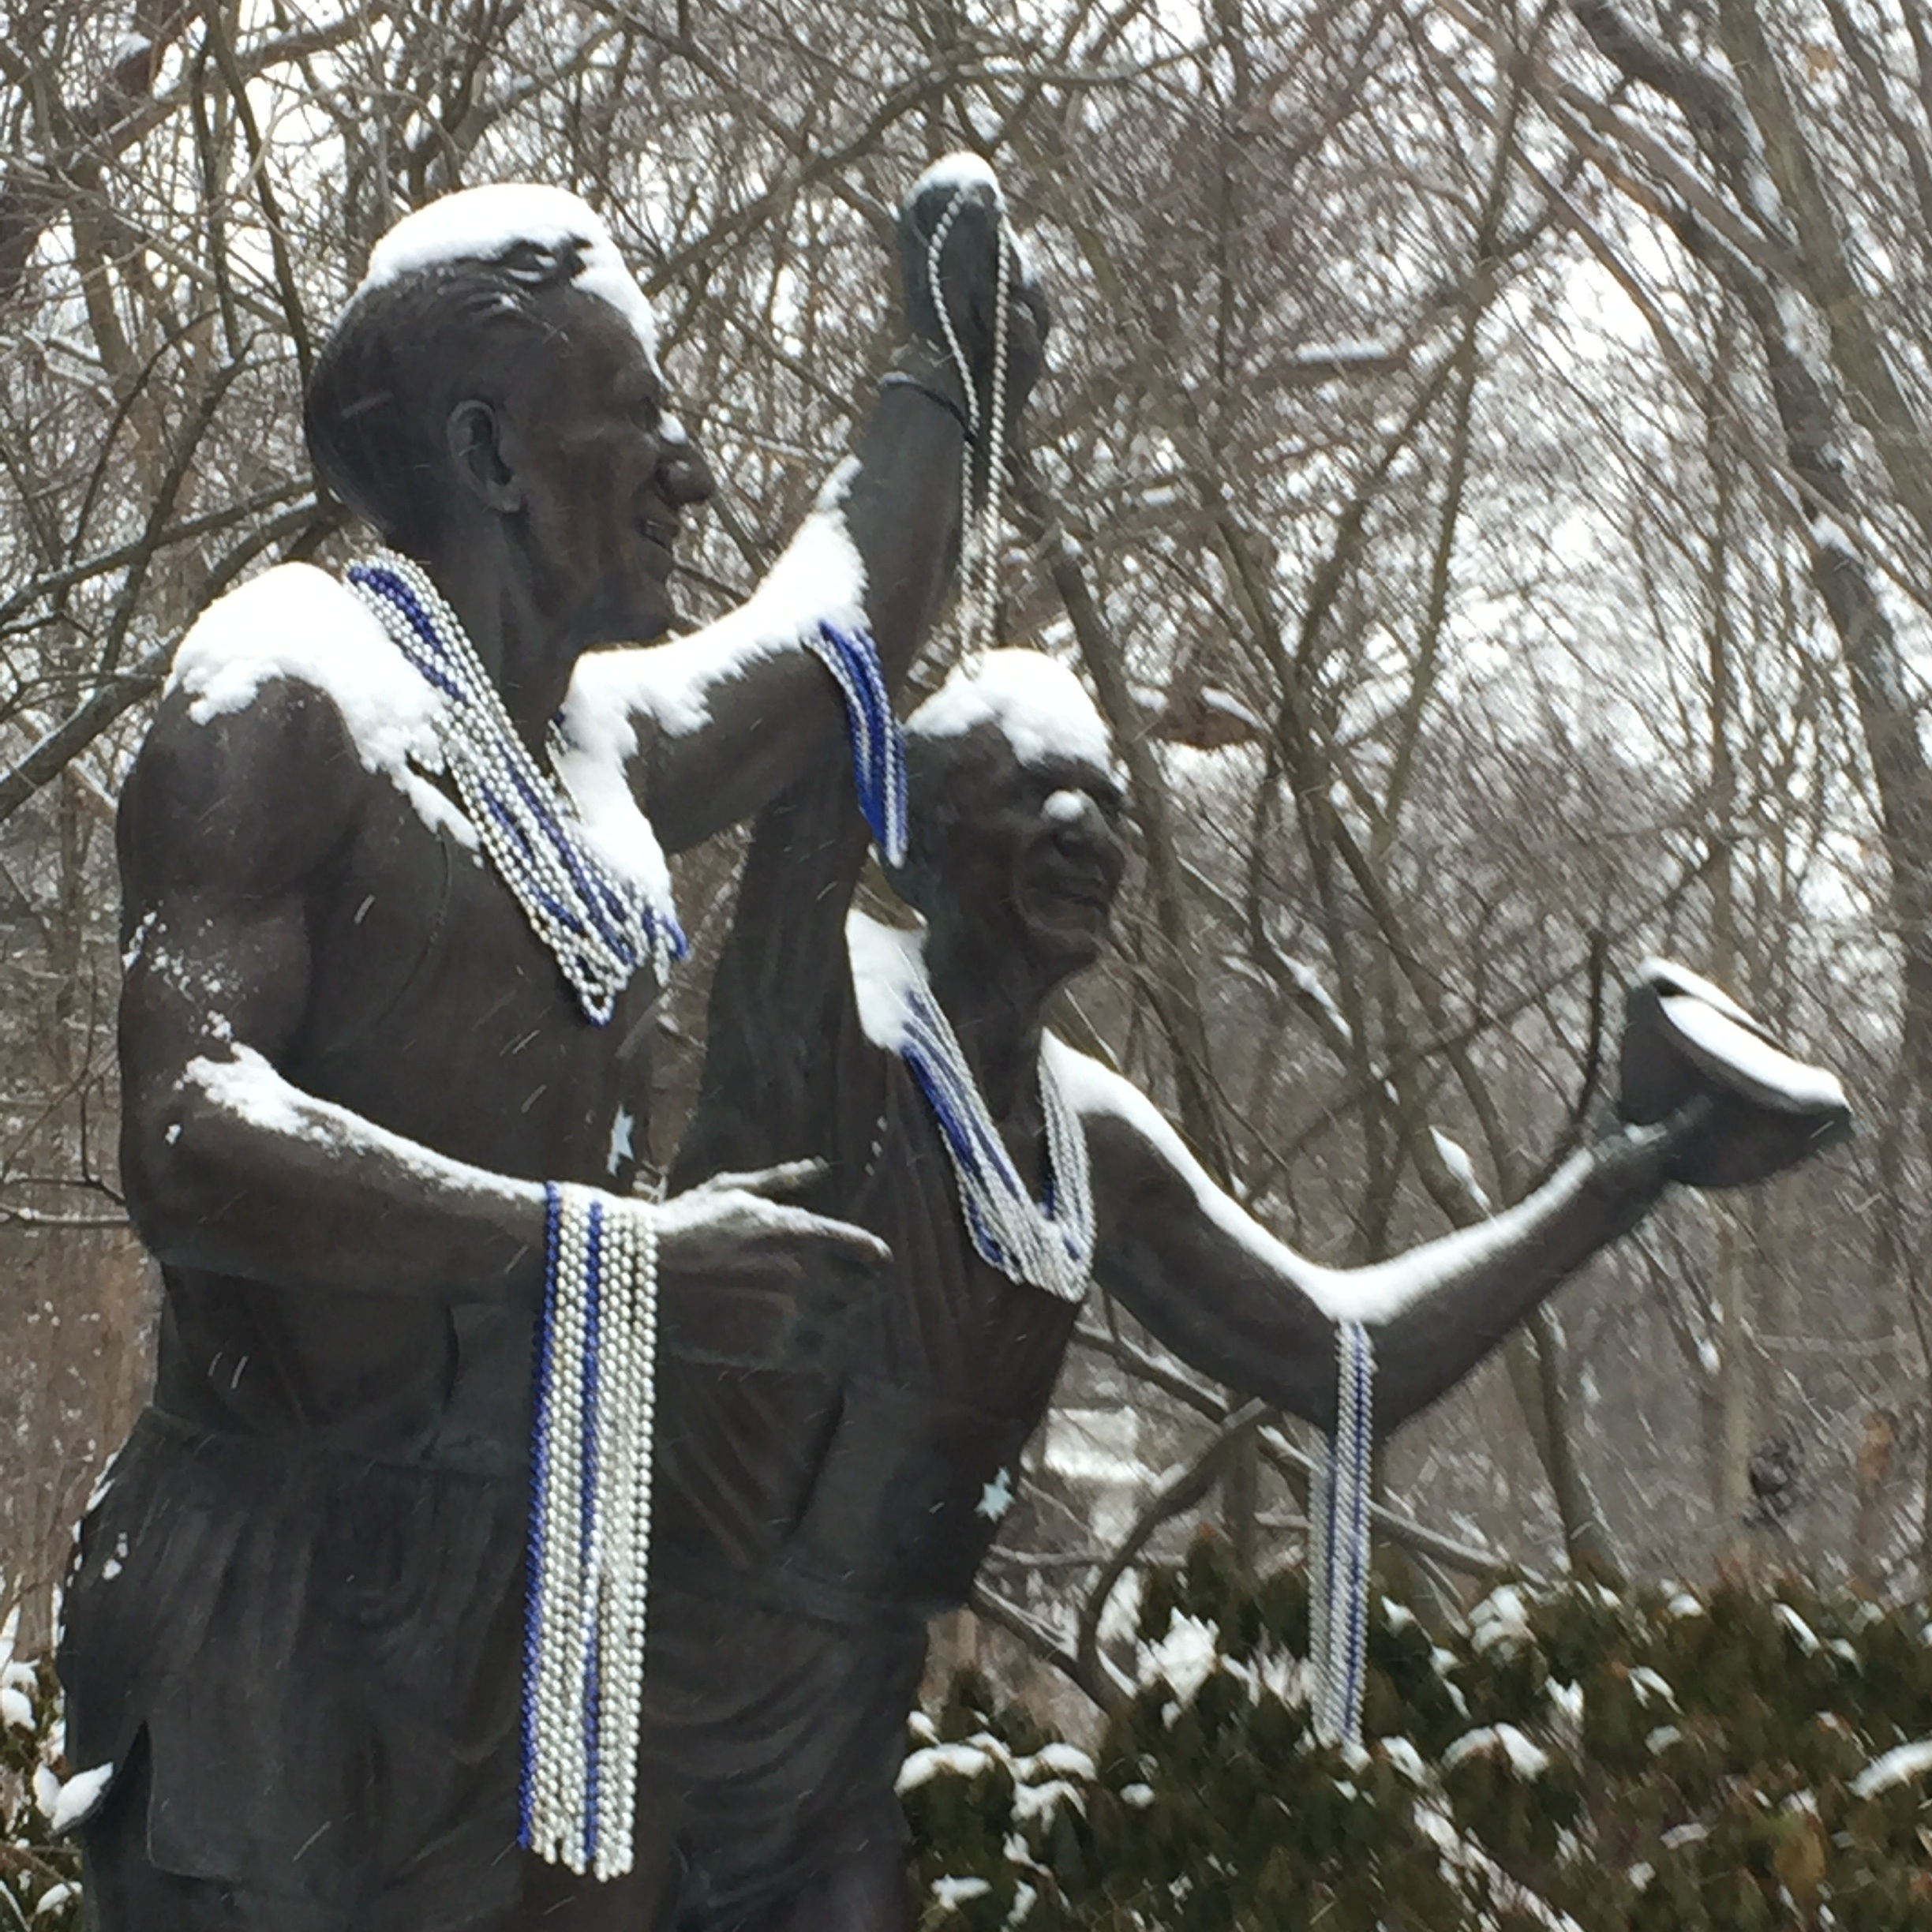 Only Johnny Kelley and I were out running that day. Johnny Kelley statue, Commonwealth Ave., Newton, MA